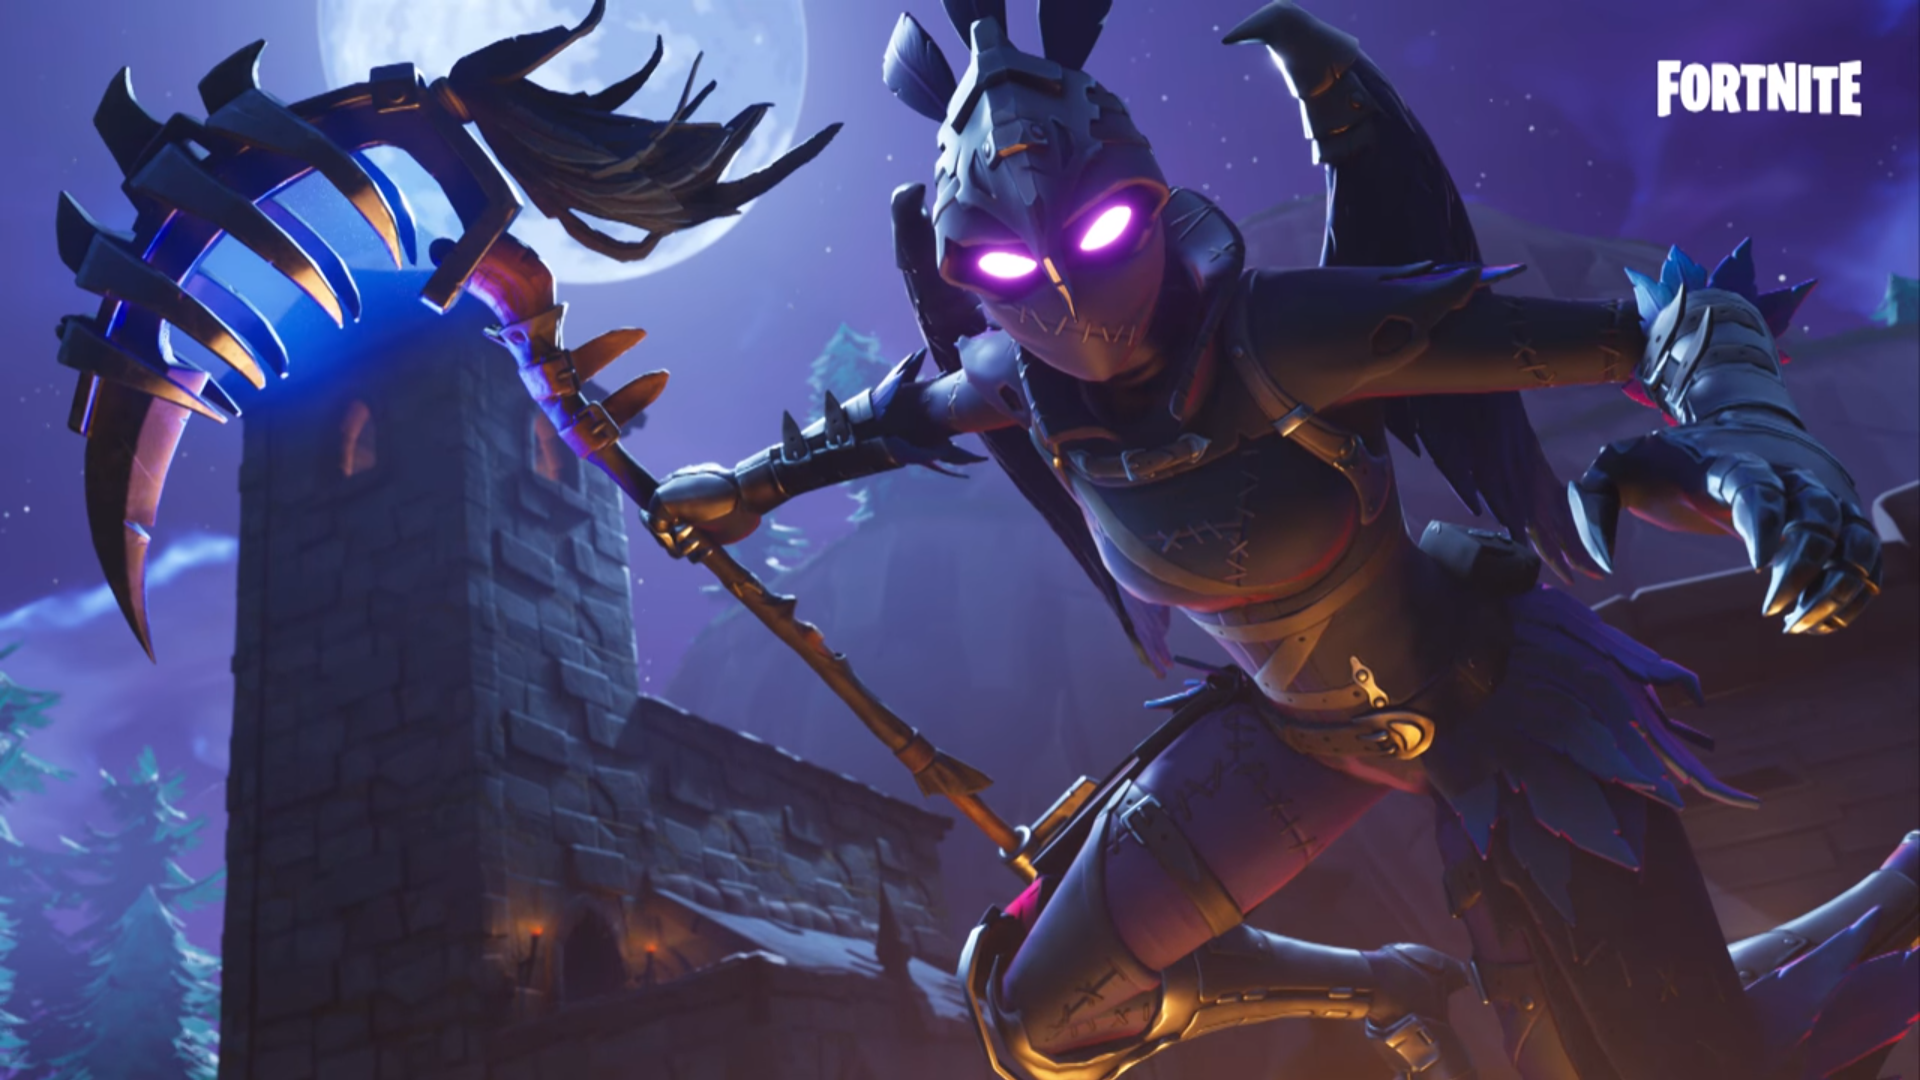 Free Download Fortnite Ravage Hd Wallpaper Background Image 1920x1080 Id 1920x1080 For Your Desktop Mobile Tablet Explore 26 Fortnite Hd Wallpapers Fortnite Hd Wallpapers Fortnite 4k Hd Wallpapers Fortnite Wallpapers